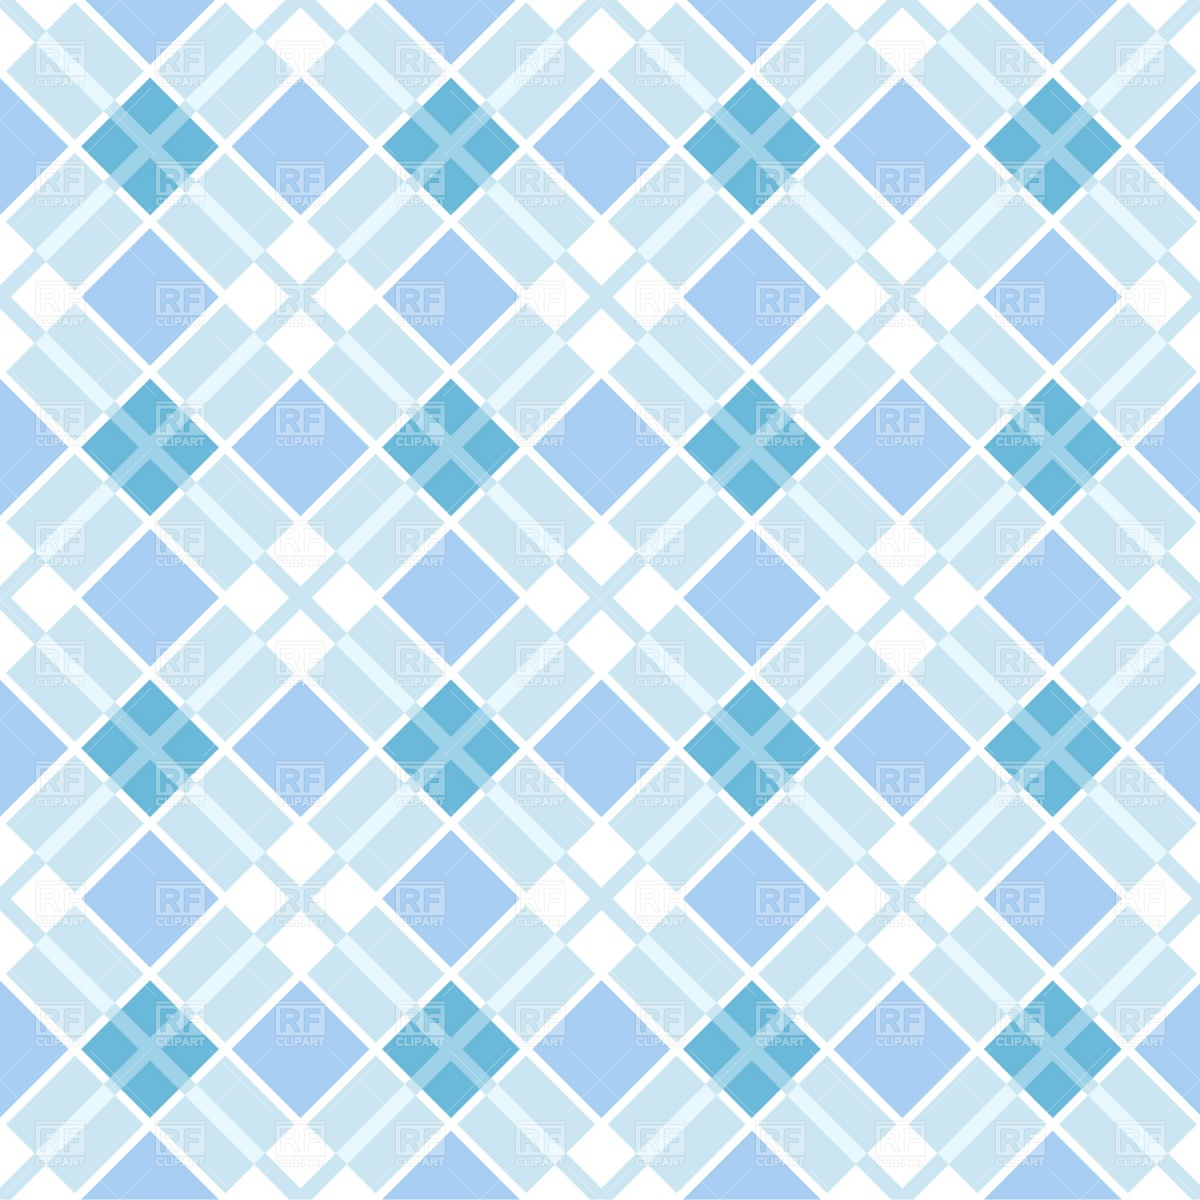 1200x1200 - Blue Plaid 14